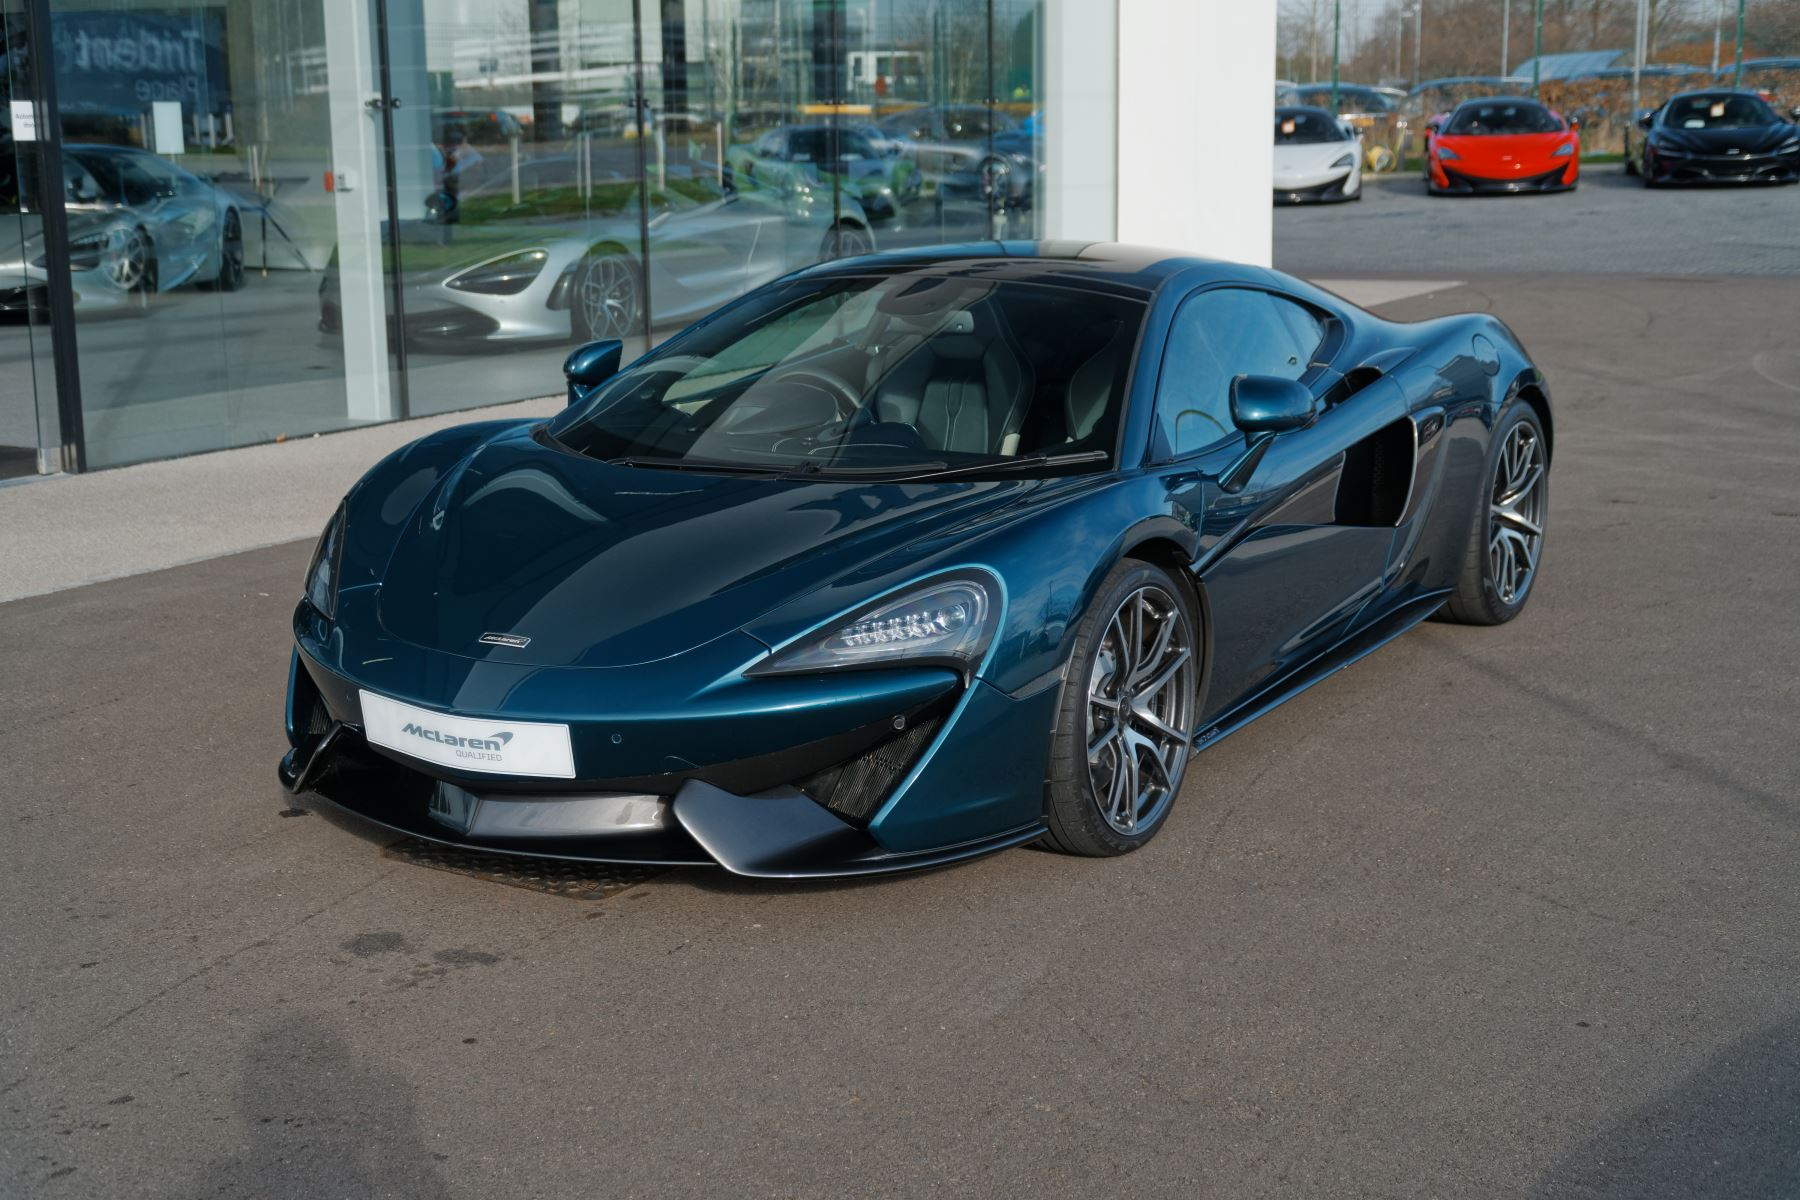 McLaren 570GT SSG  3.8 Semi-Automatic 2 door Coupe (2017)